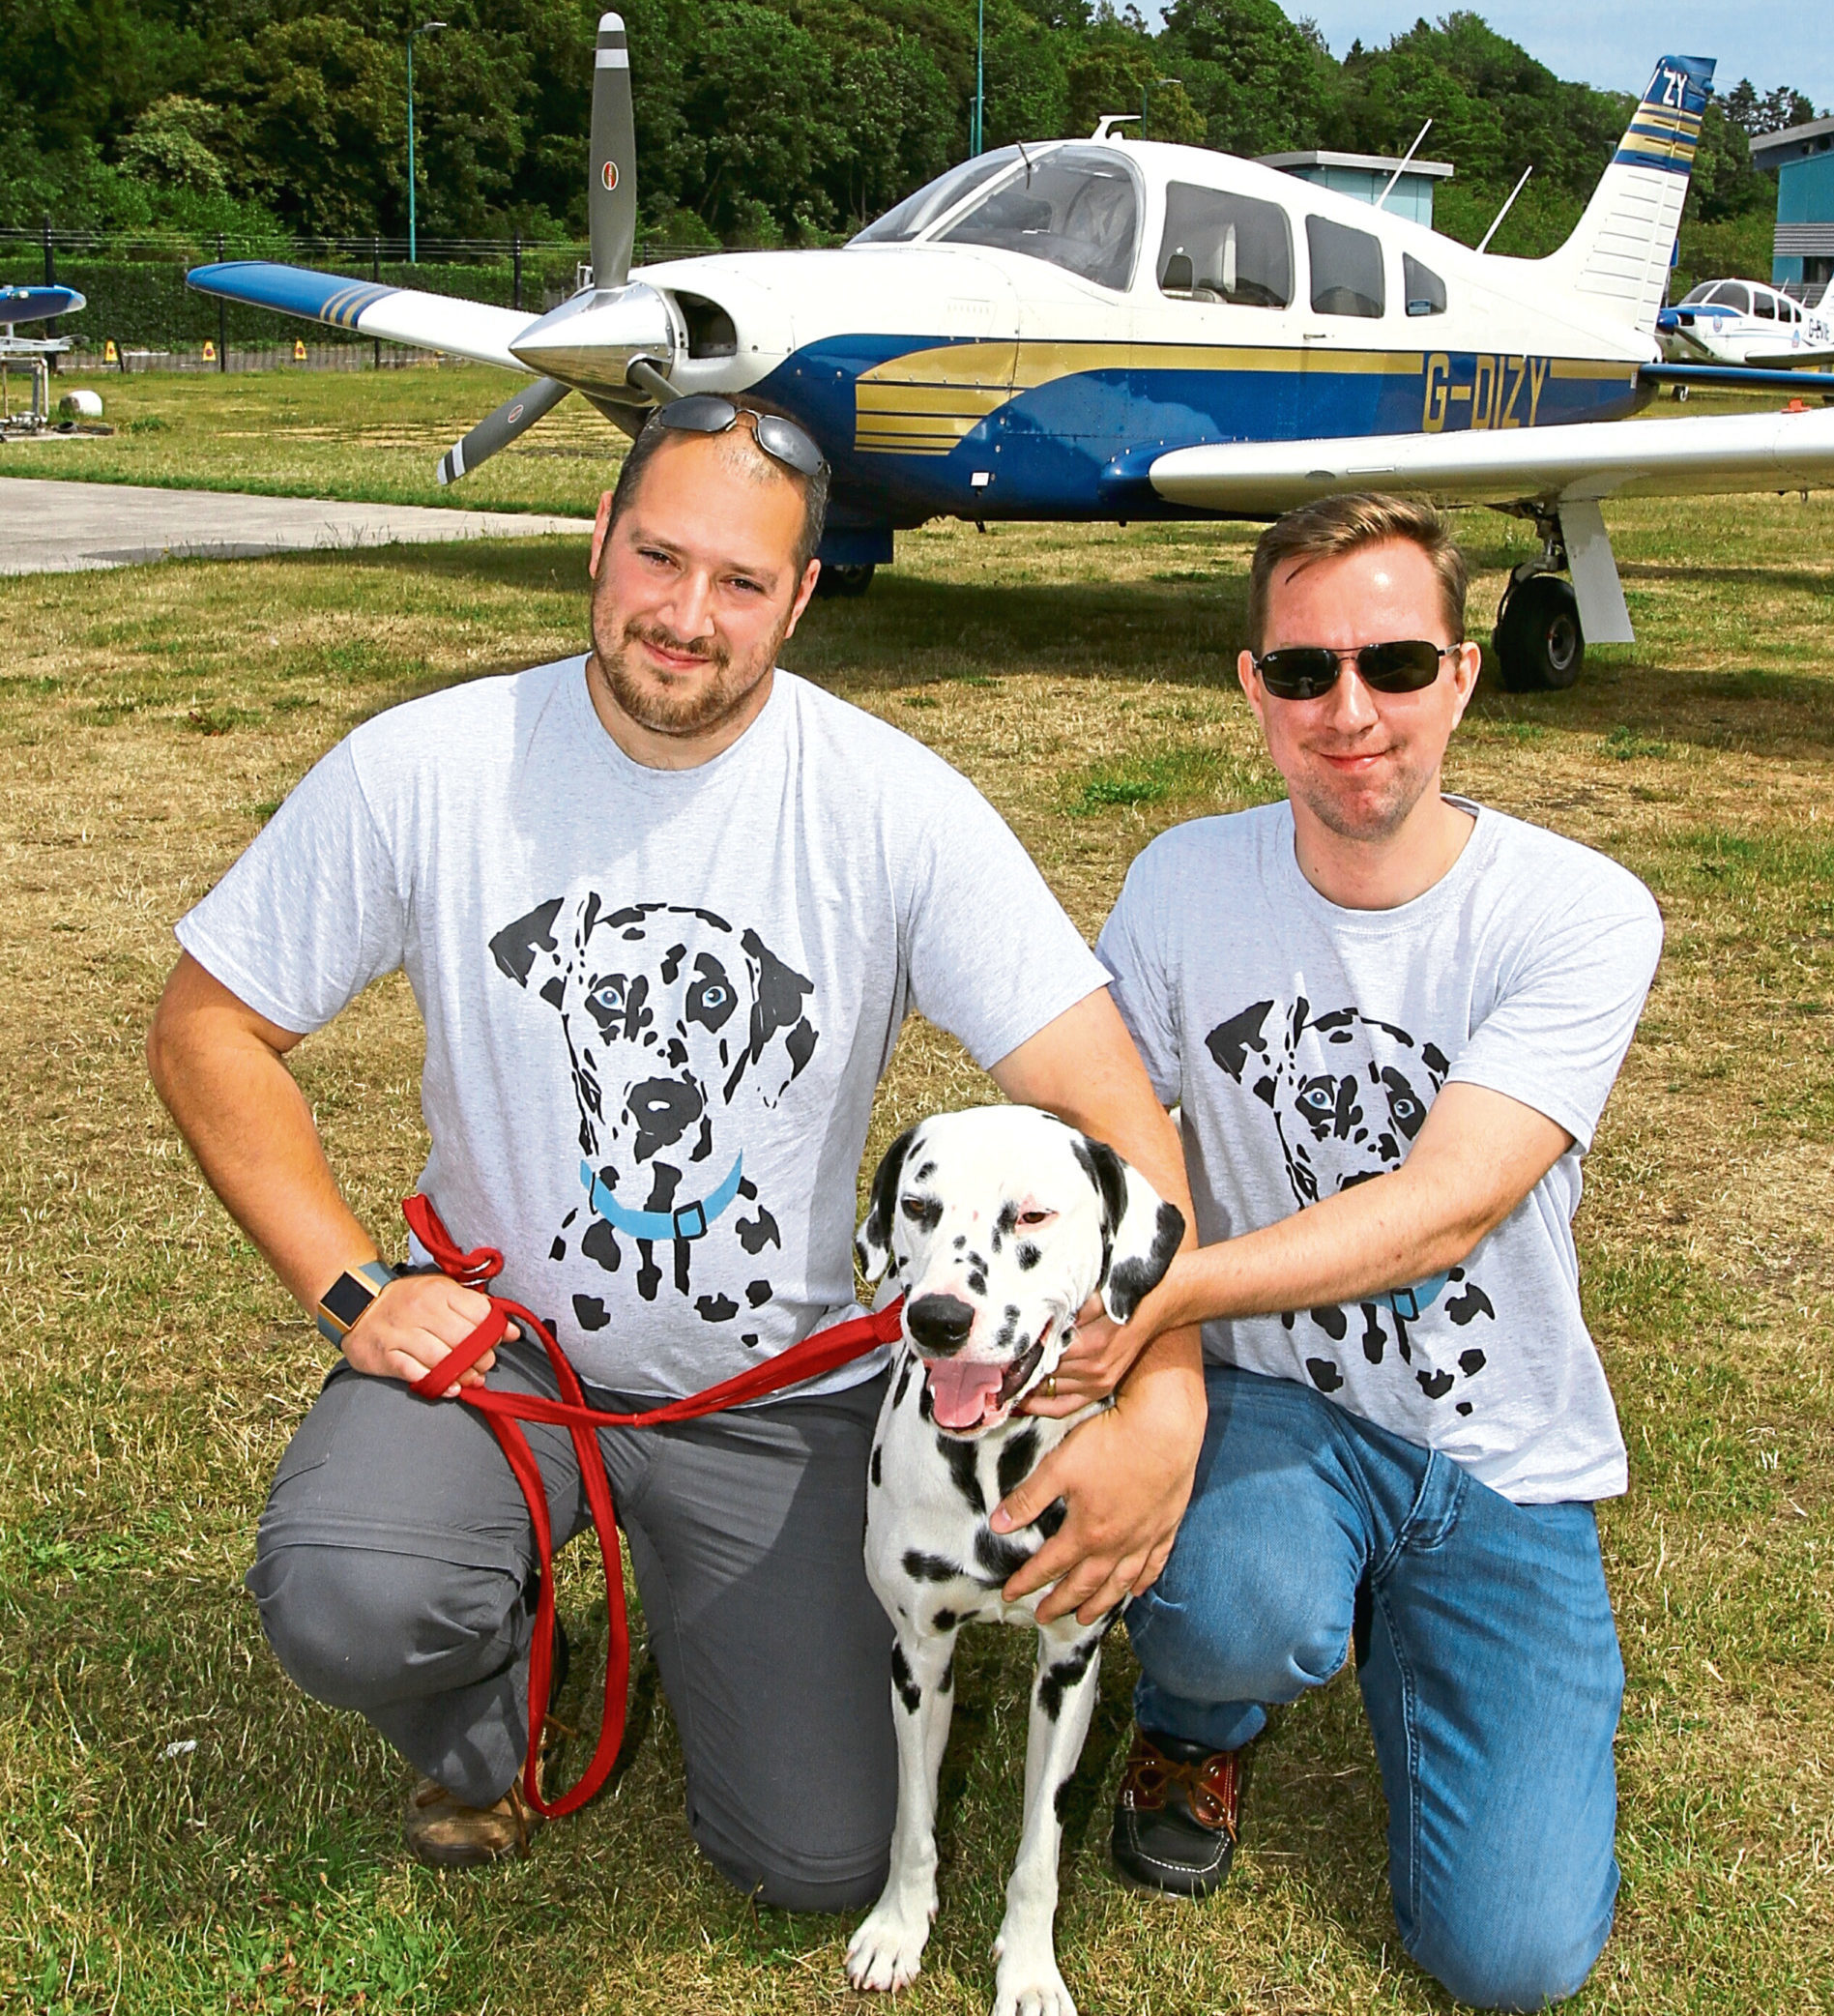 William, right, Nick and Ludo get set for their flight